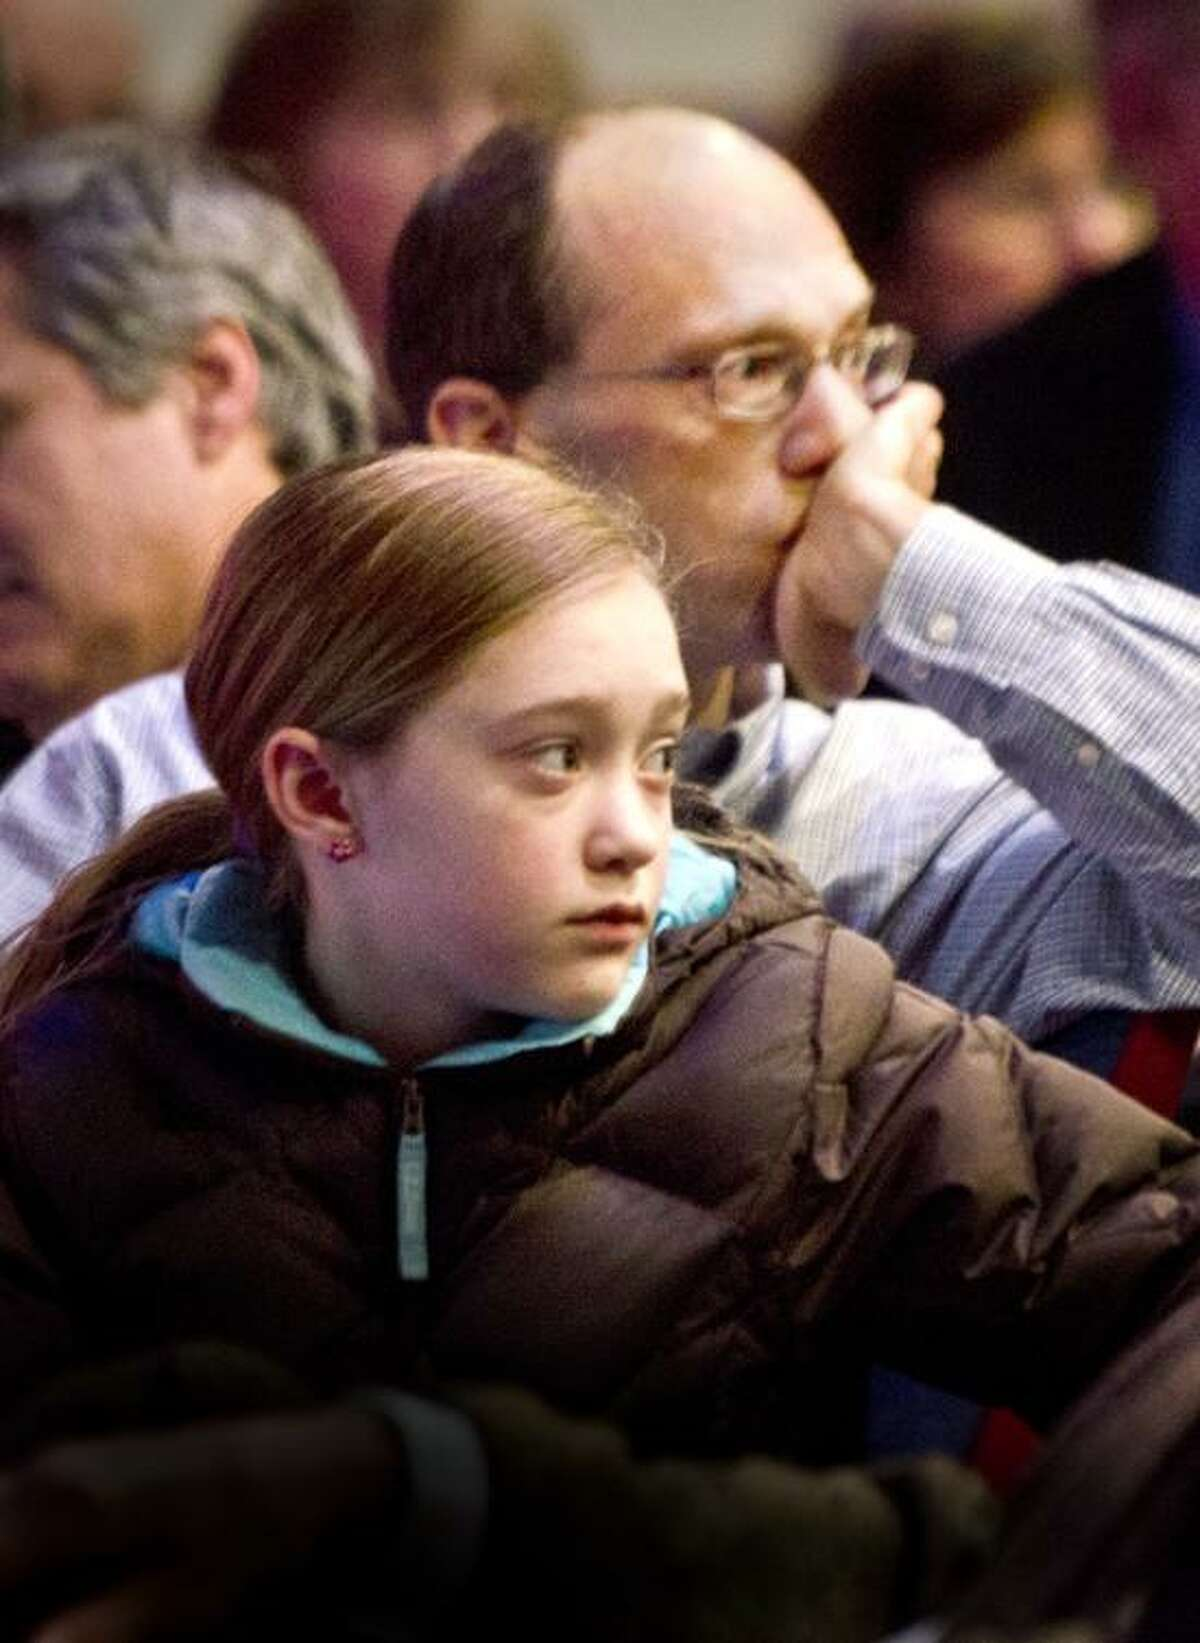 Waterbury--Monte Frank, and his daughter Sarah Frank,11, of Sandy Hook listen to people speaking from the crowd gathered for a Town Hall meeting on guns. The meeting, held by Congresswoman Elizabeth Esty, took place at Rotella Interdistrict Magnet School. Sarah was taught by slain Sandy Hook teacher, Victoria Soto. Melanie Stengel/Register